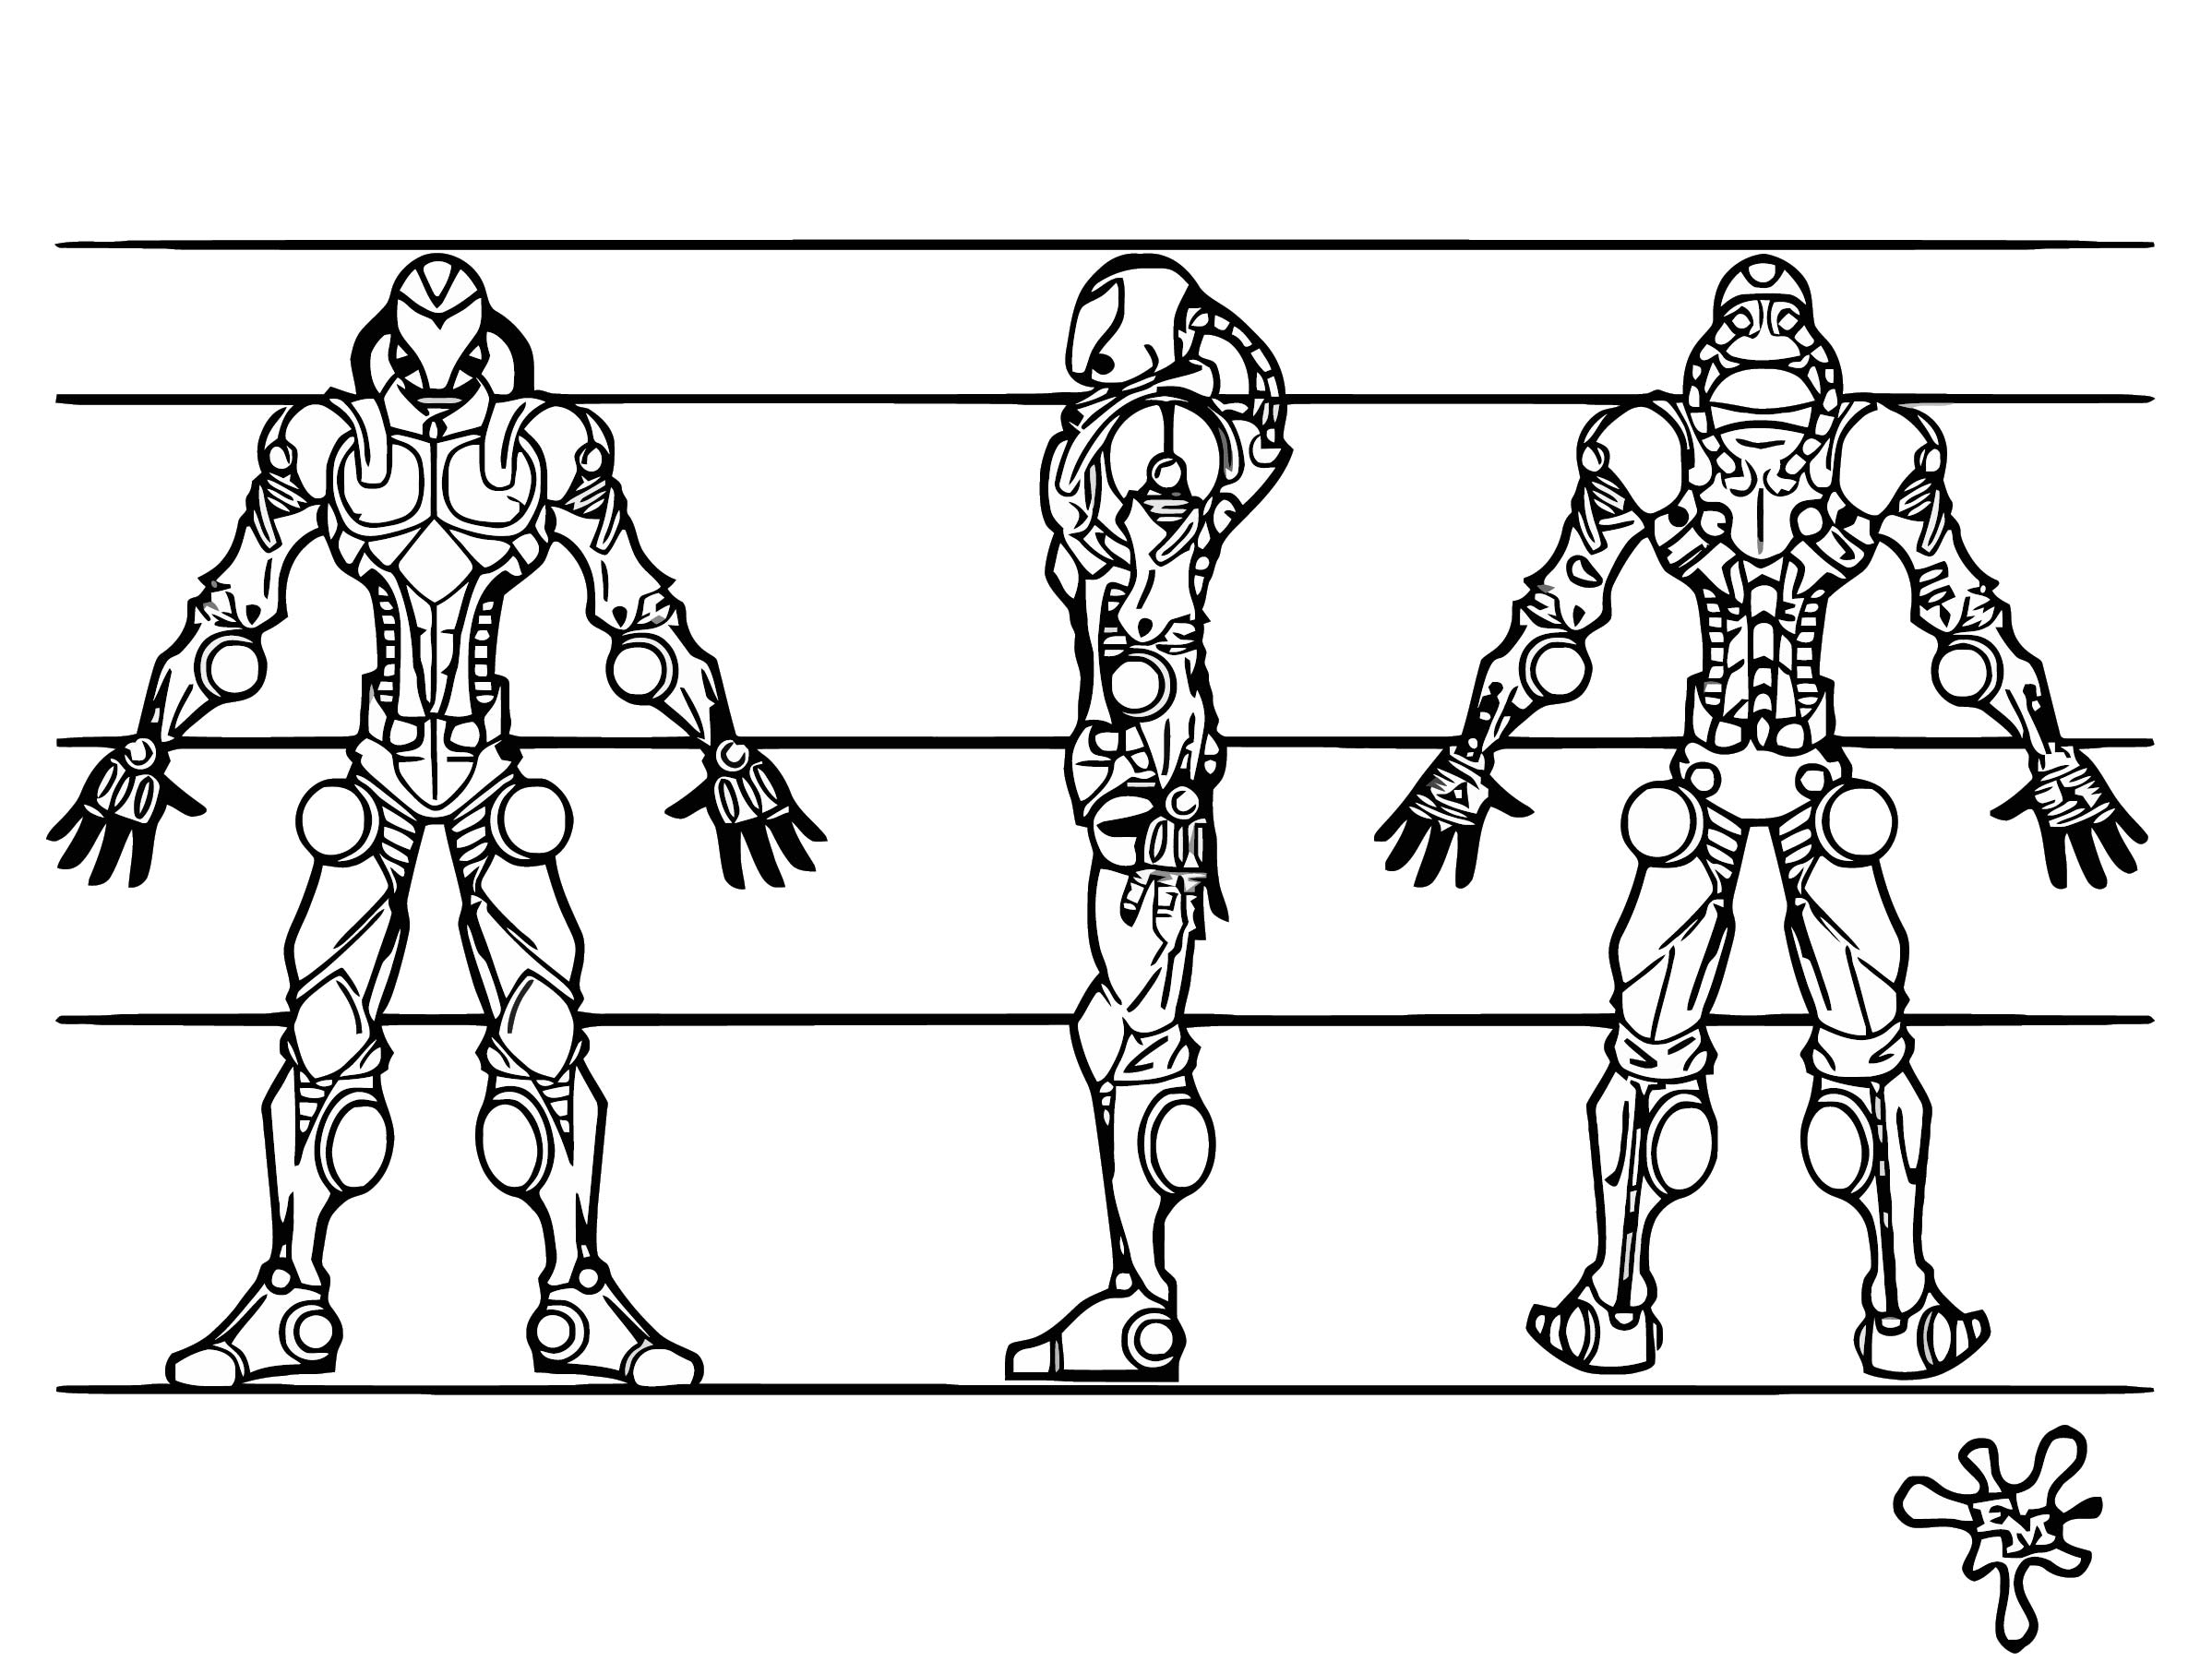 Portfolio Work Character Design Cyber Cartoonize Coloring Page